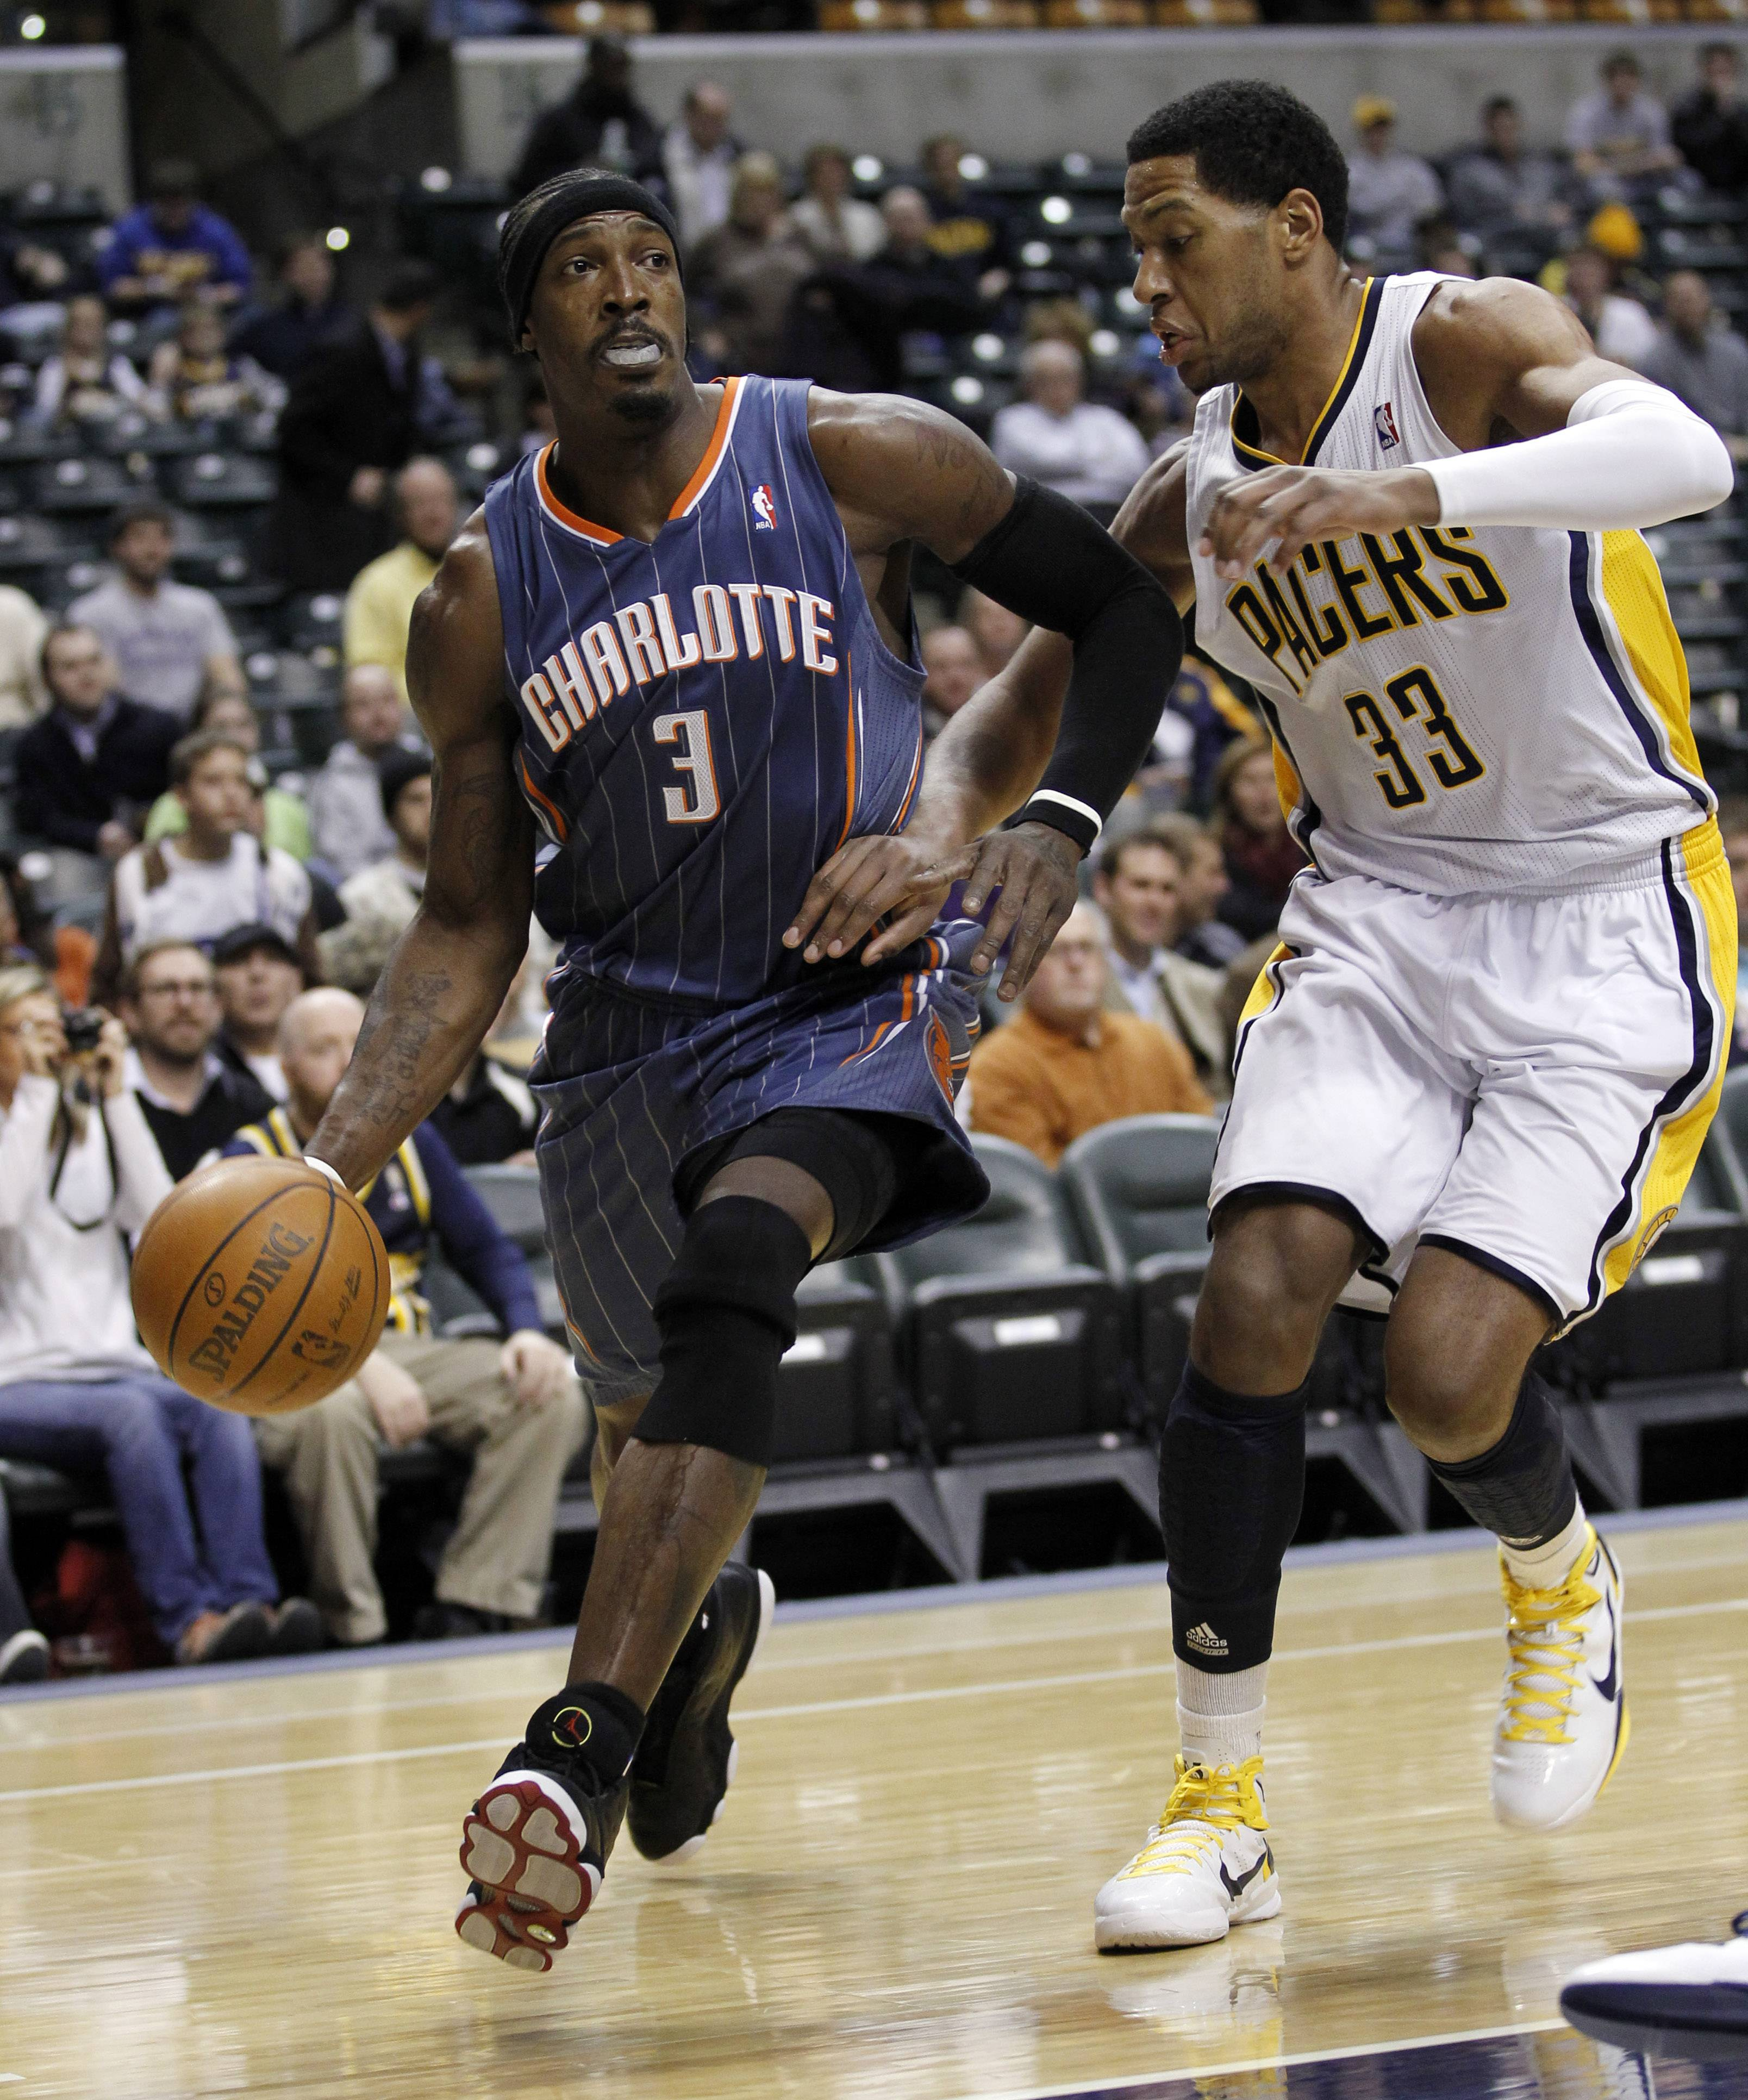 Charlotte Bobcats forward Gerald Wallace, left, drives on Indiana Pacers forward Danny Granger.